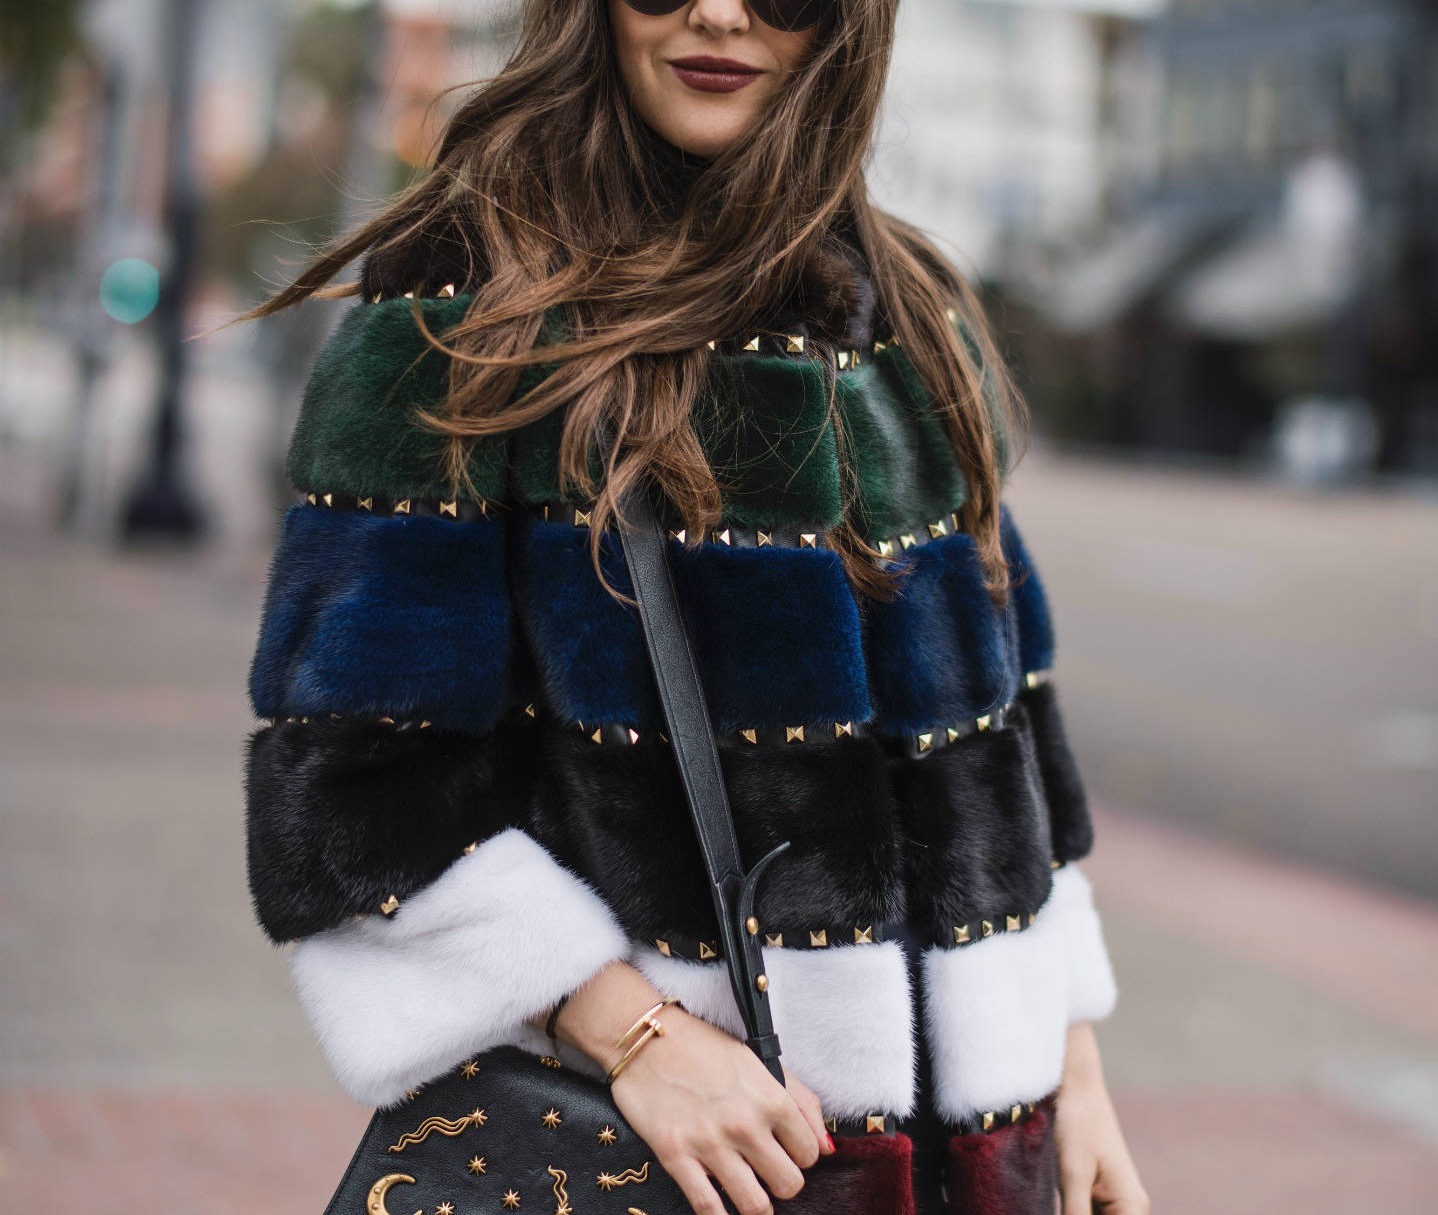 10 tendencias que marcaran este invierno-invierno-winter is here-winter is coming-moda invernal-fashion-winter fashion-style-lifestyle-style-estilo-stylebynomads-style by nomads